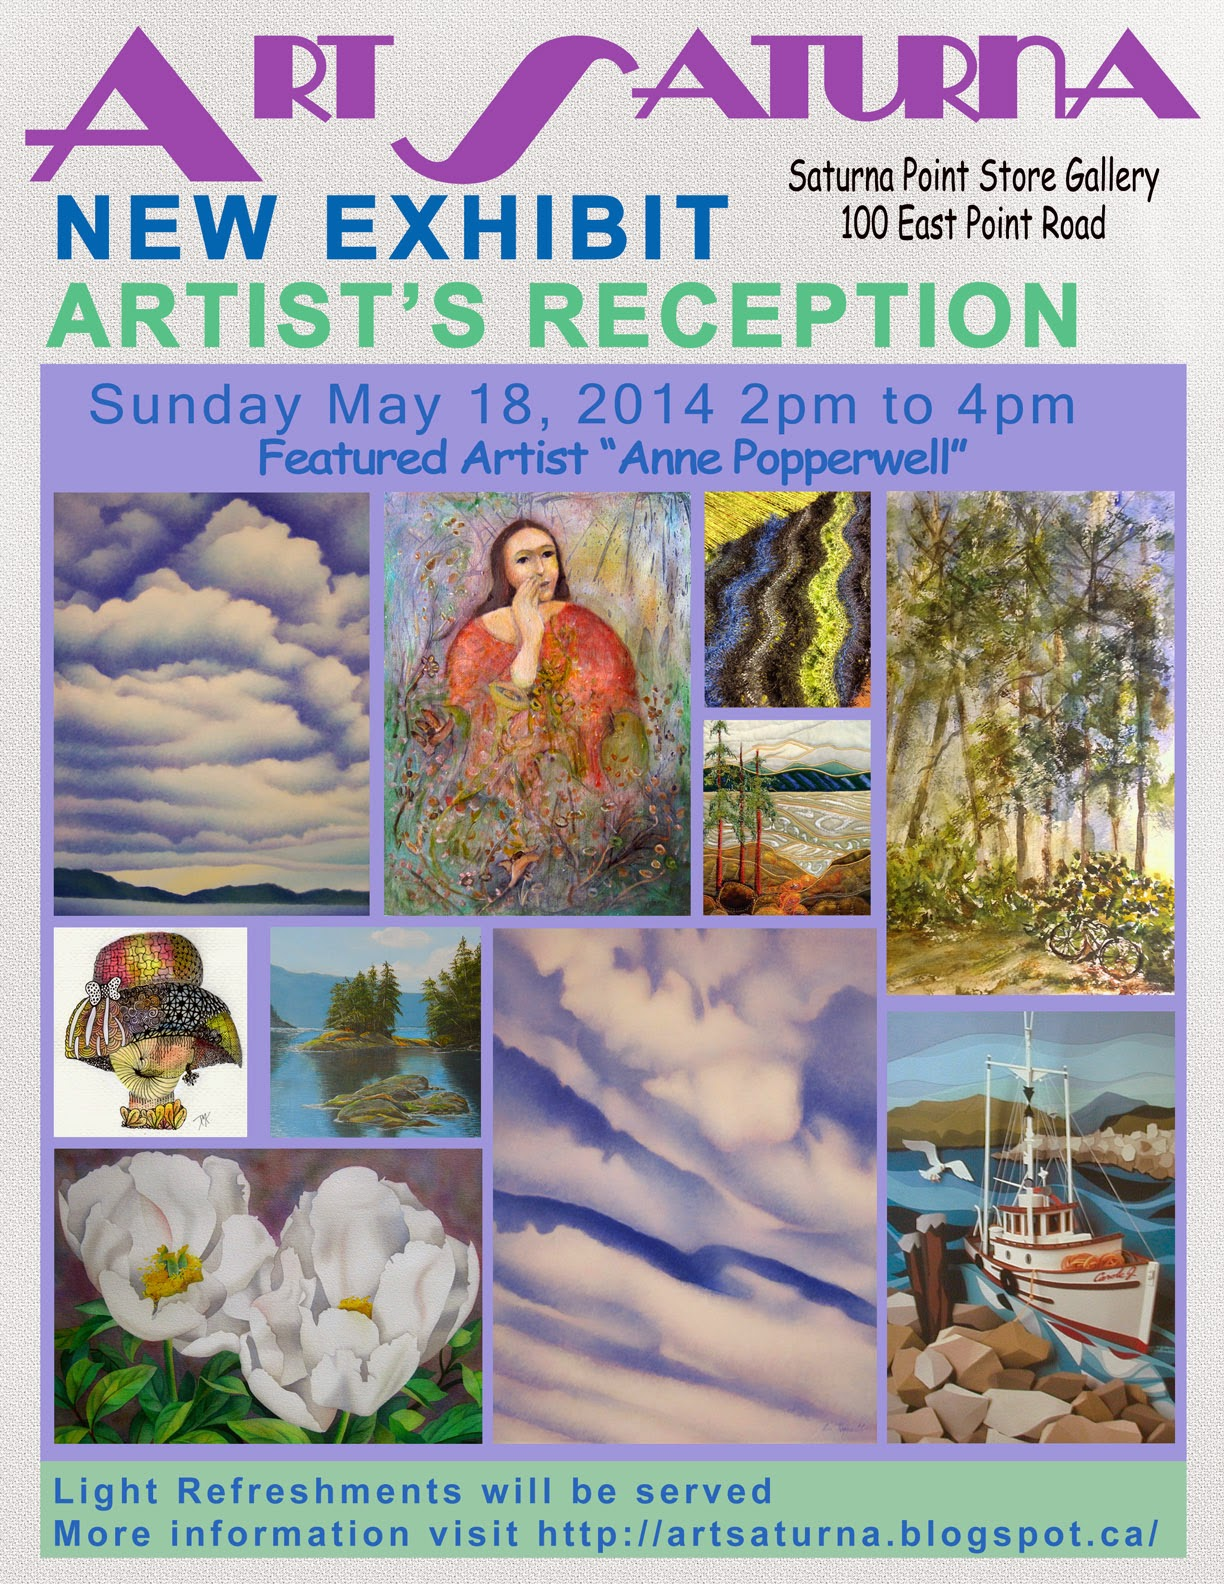 ArtSaturna New Exhibit